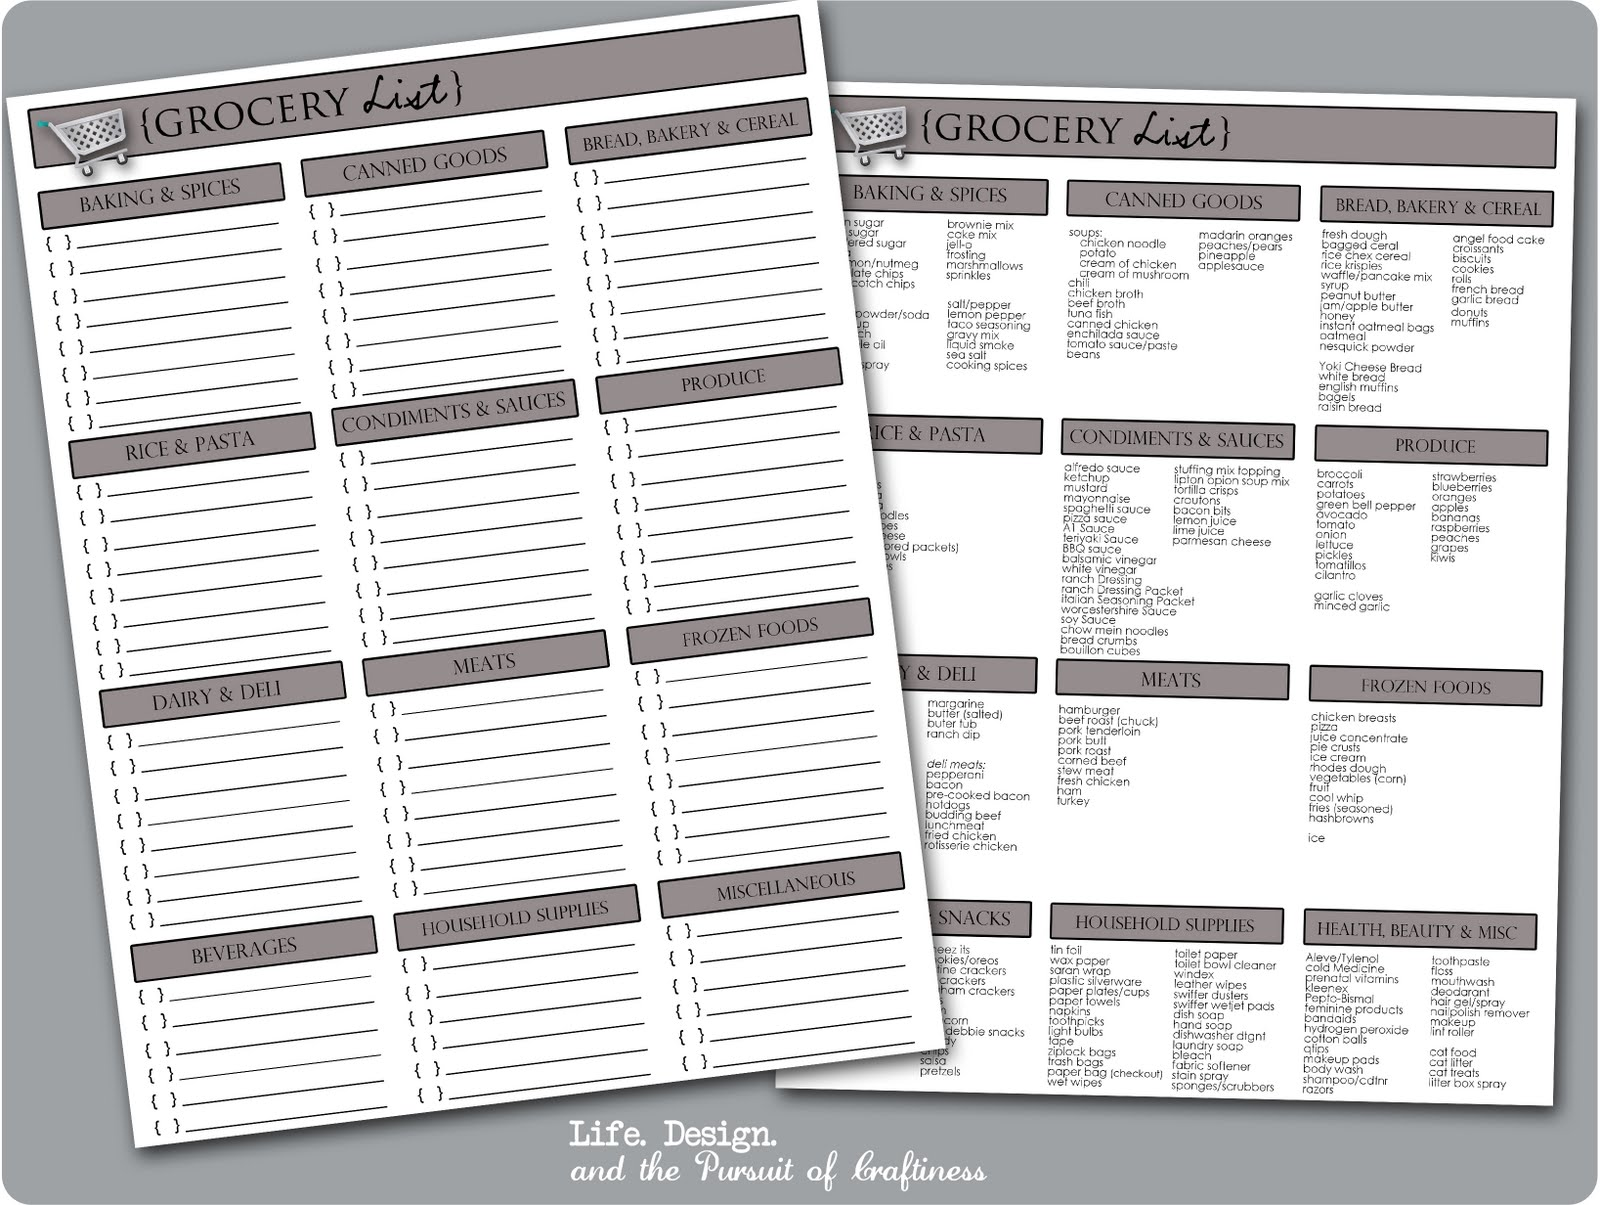 ... thought I'd share my grocery list system and include a free printable